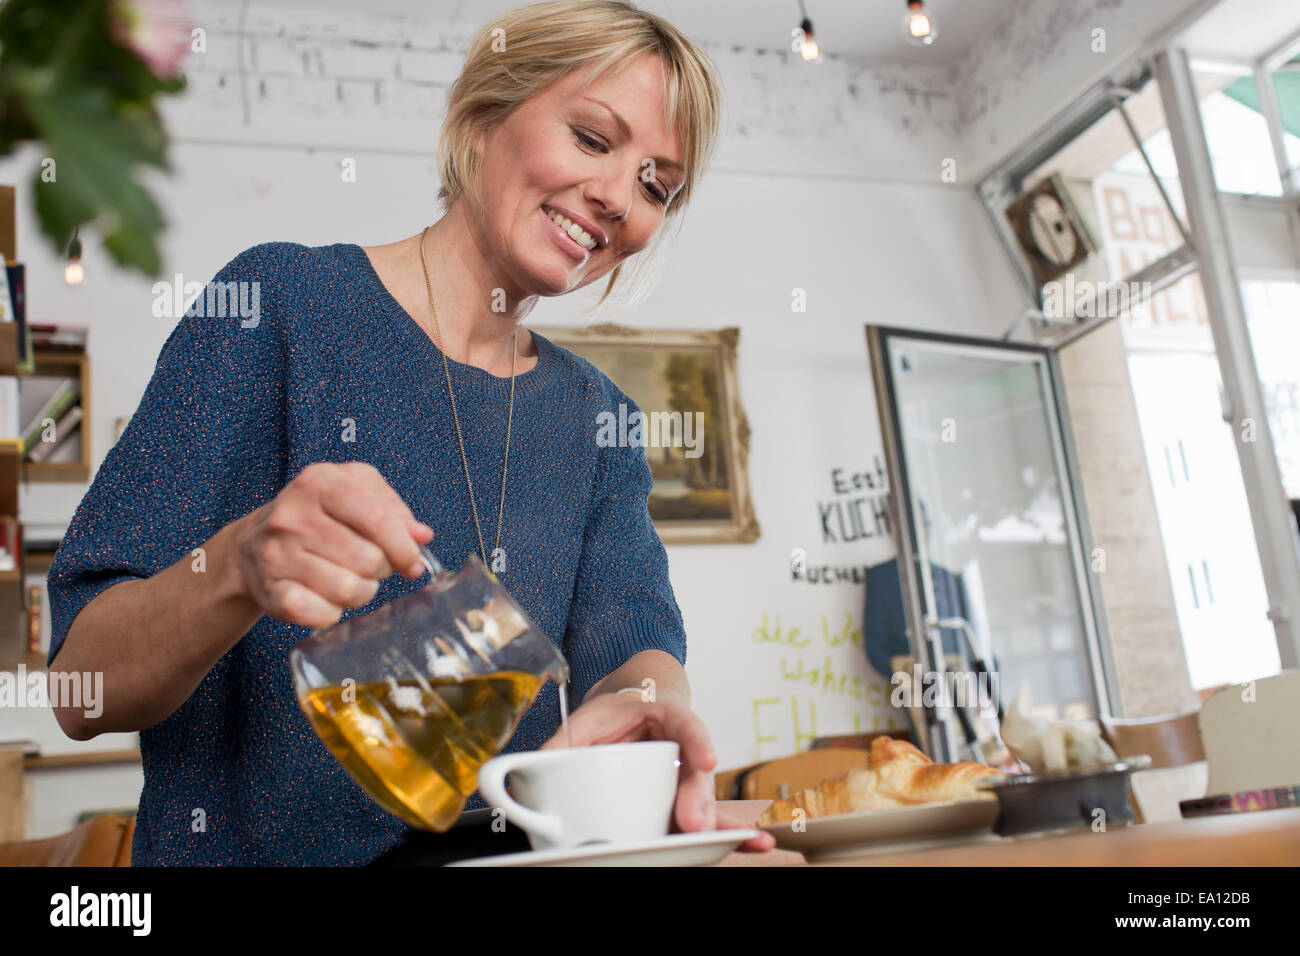 Mid adult woman pouring tea in cafe - Stock Image